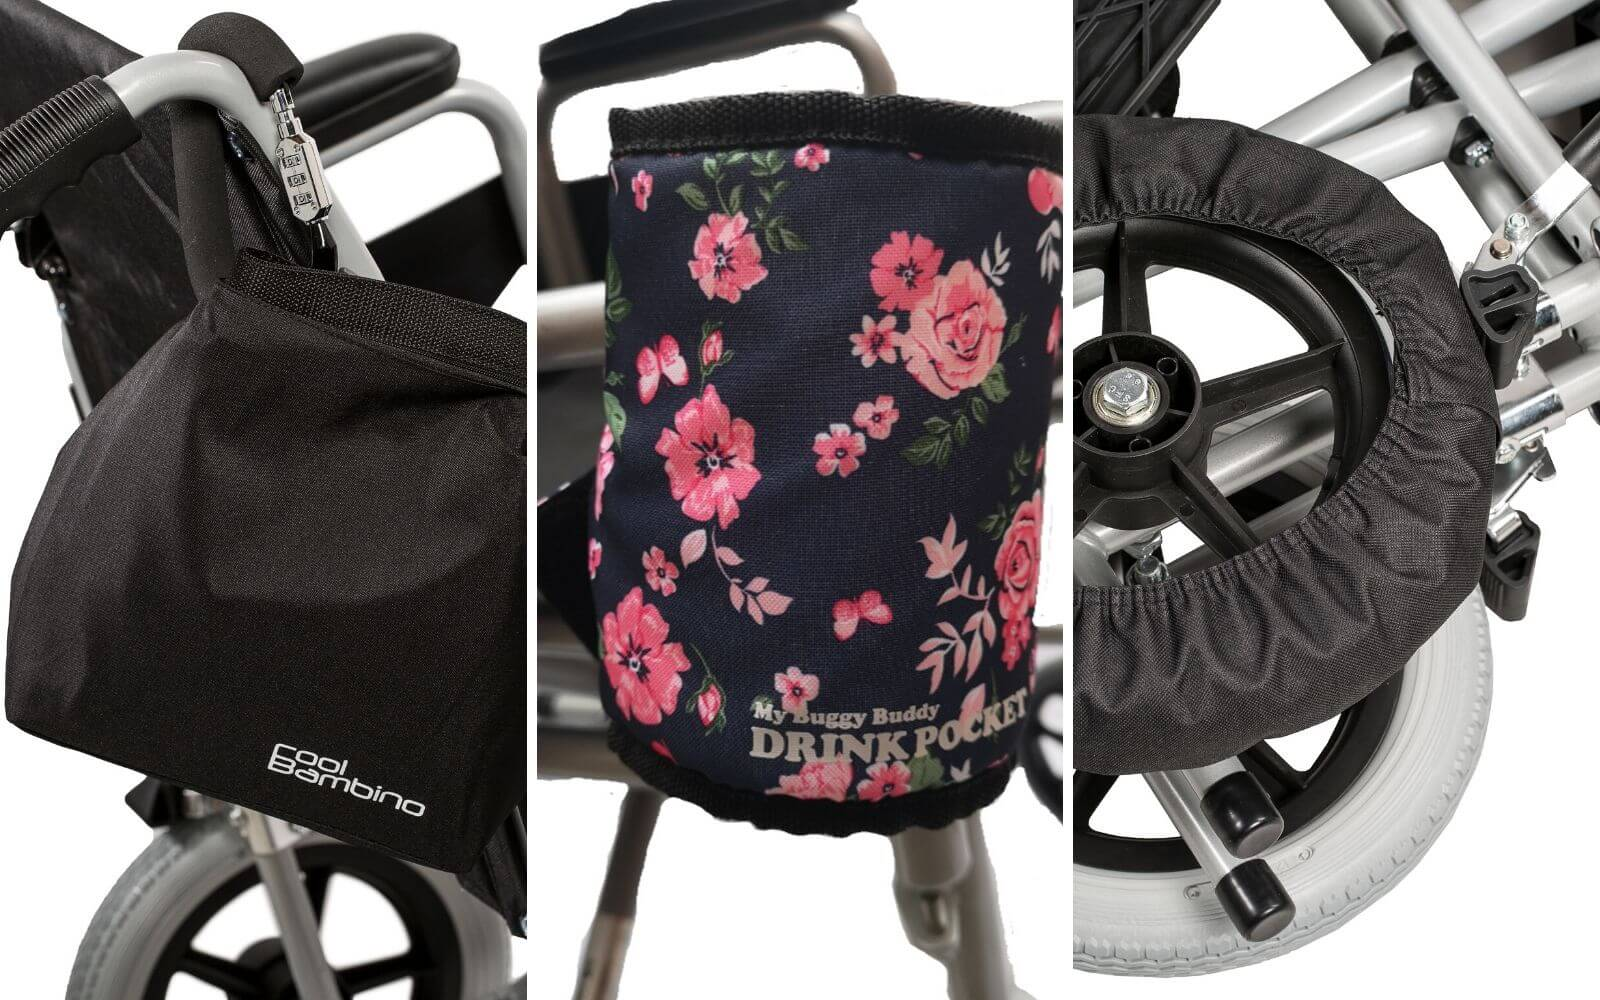 MyBuggyBuddy_accessories_for_wheelchairs_and_special_needs_buggies